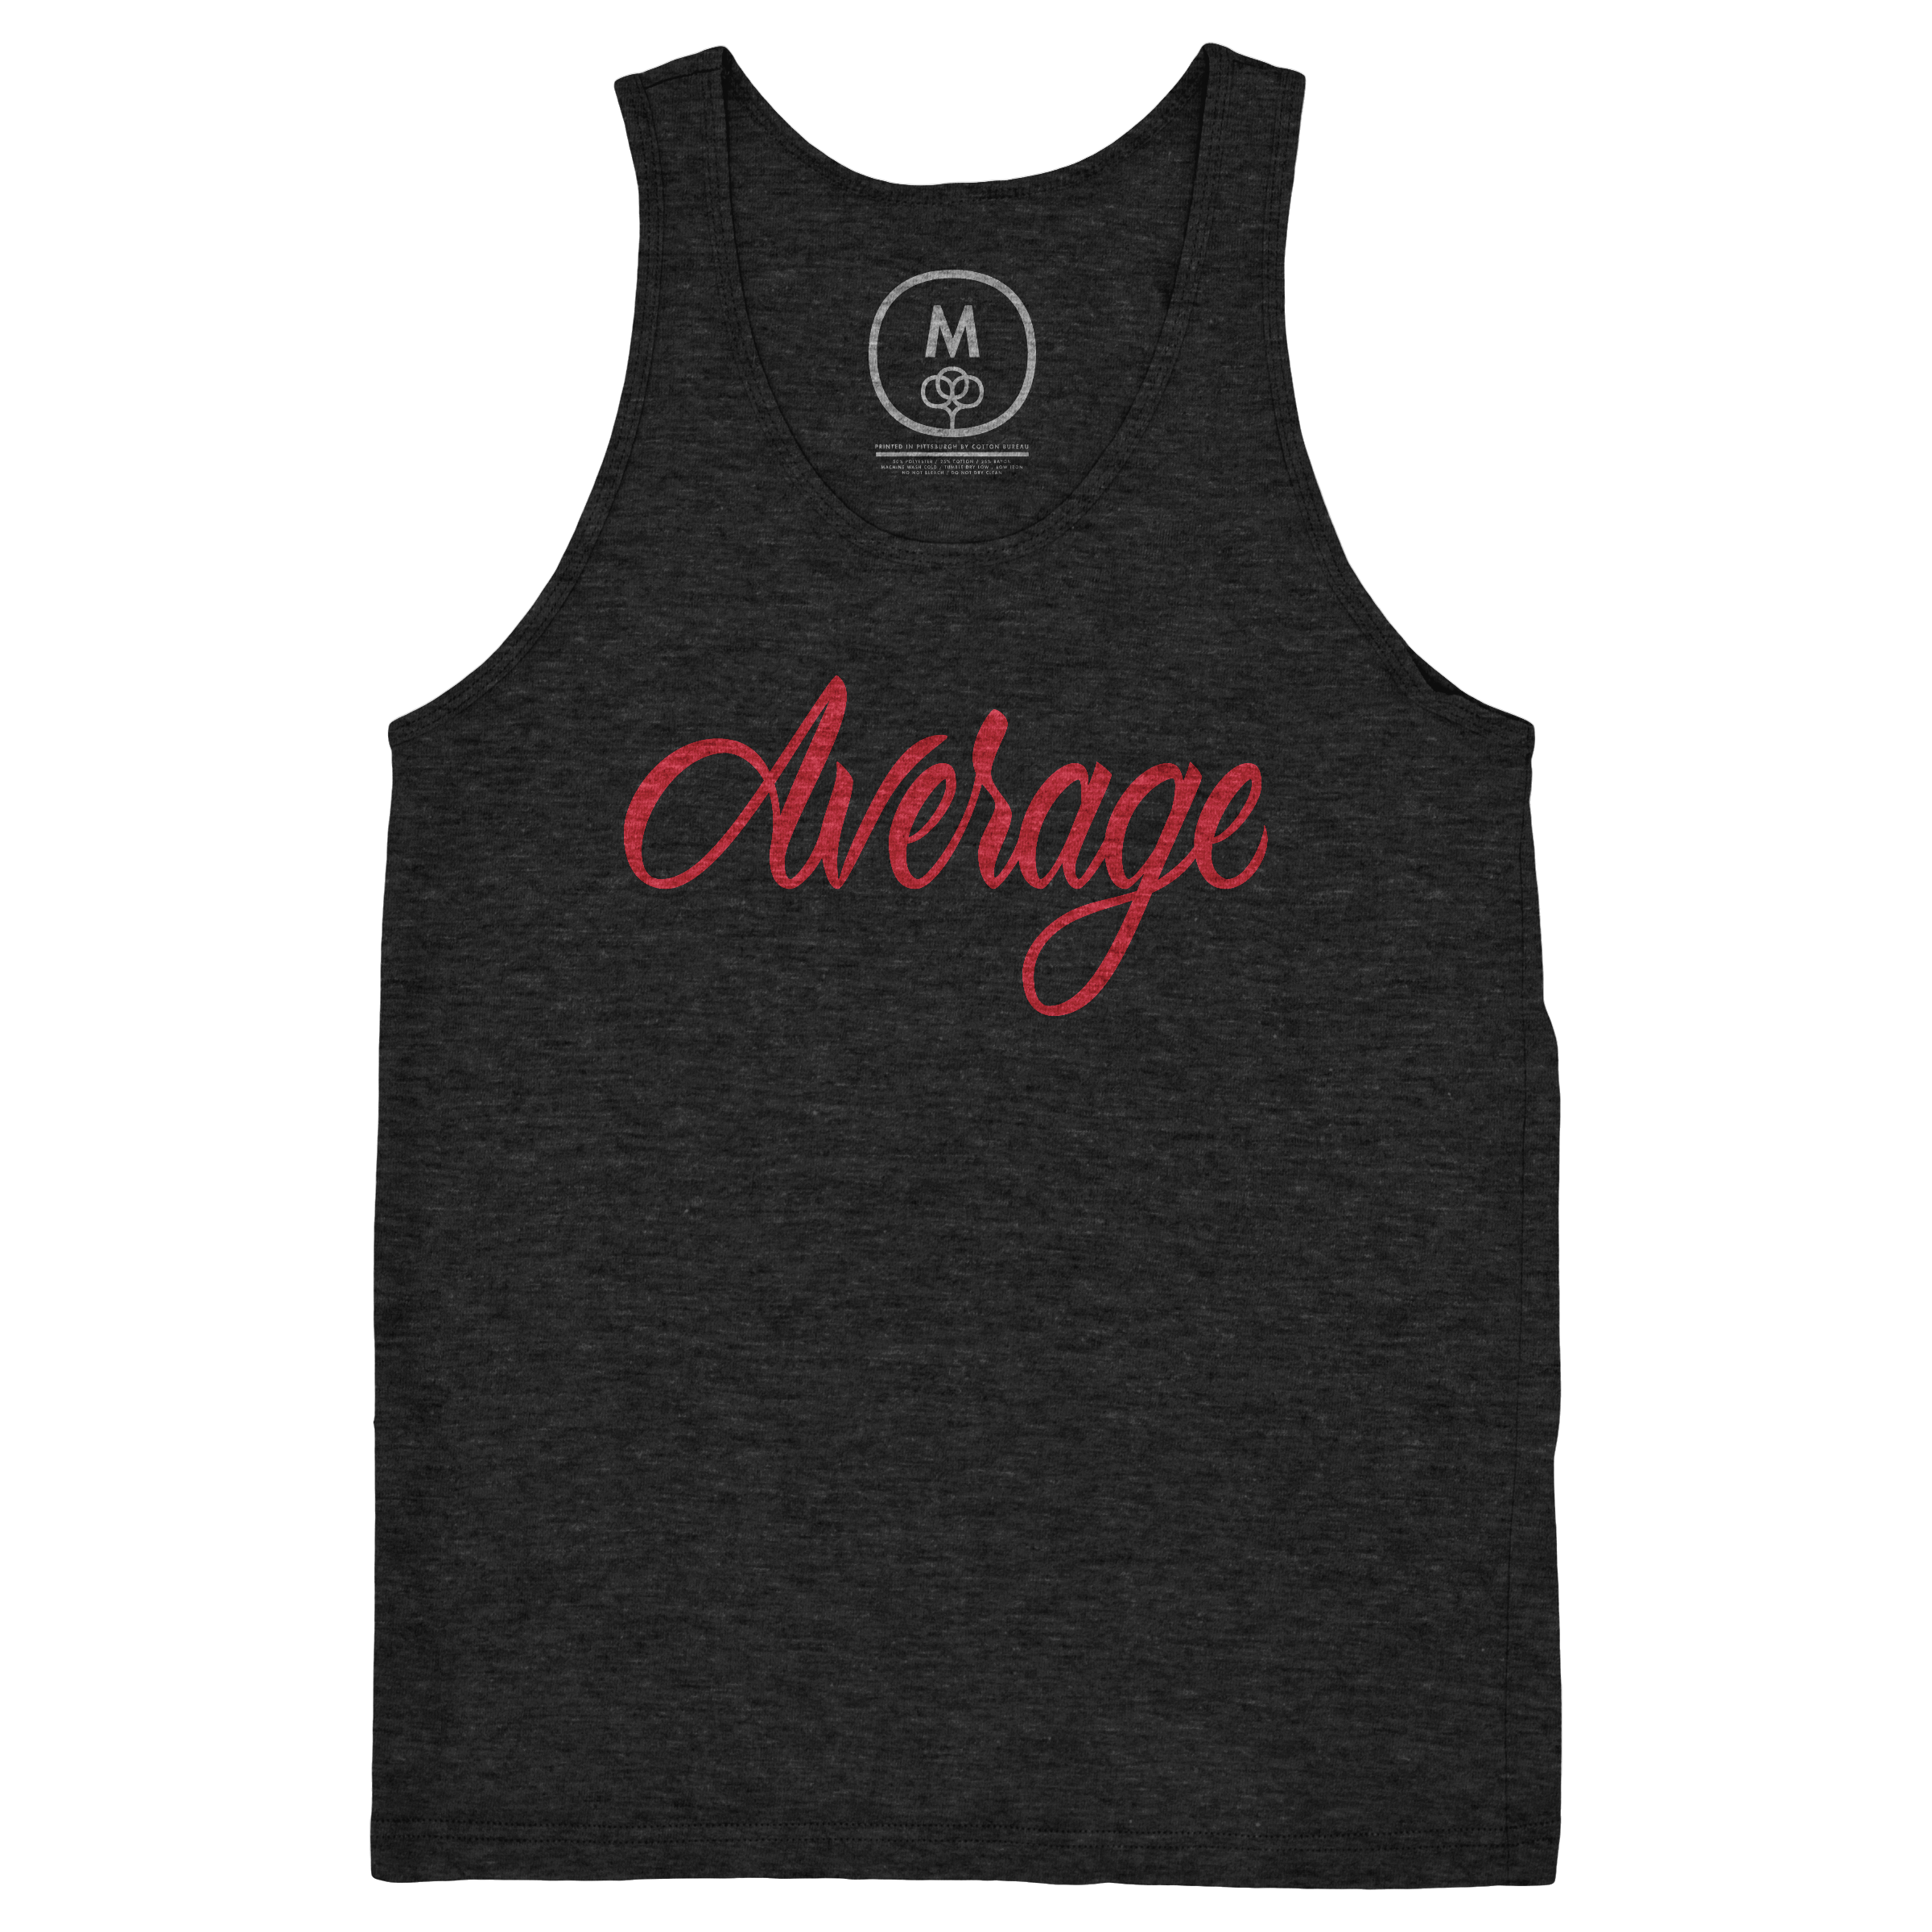 Your Average Tee Tank Top